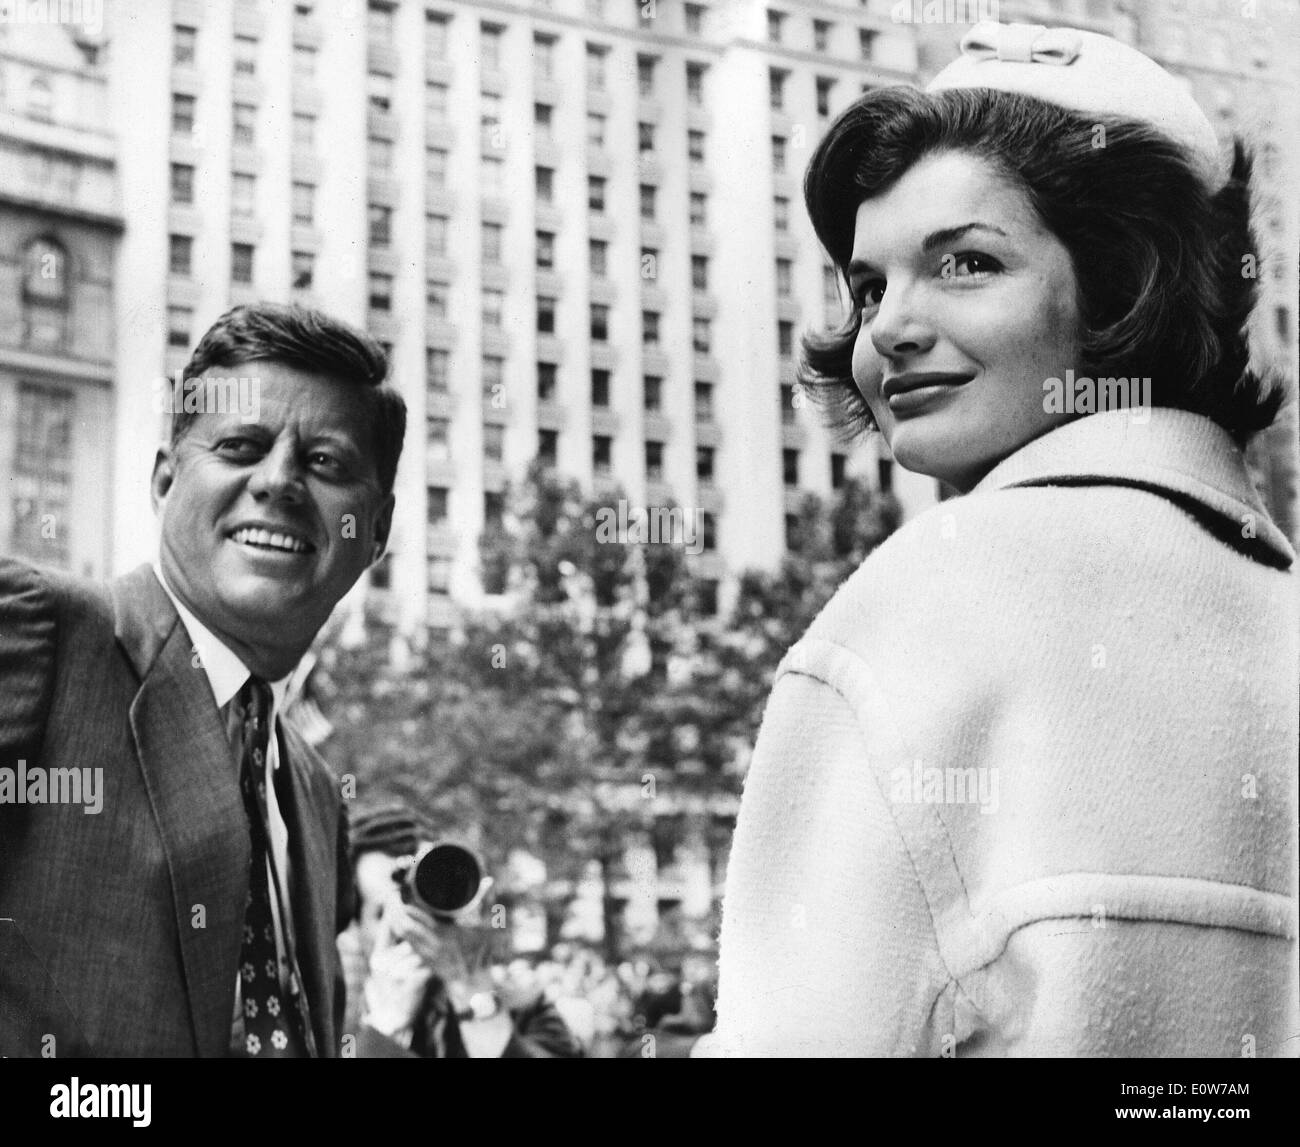 President Kennedy and wife Jackie at a Ticker Tape Parade - Stock Image